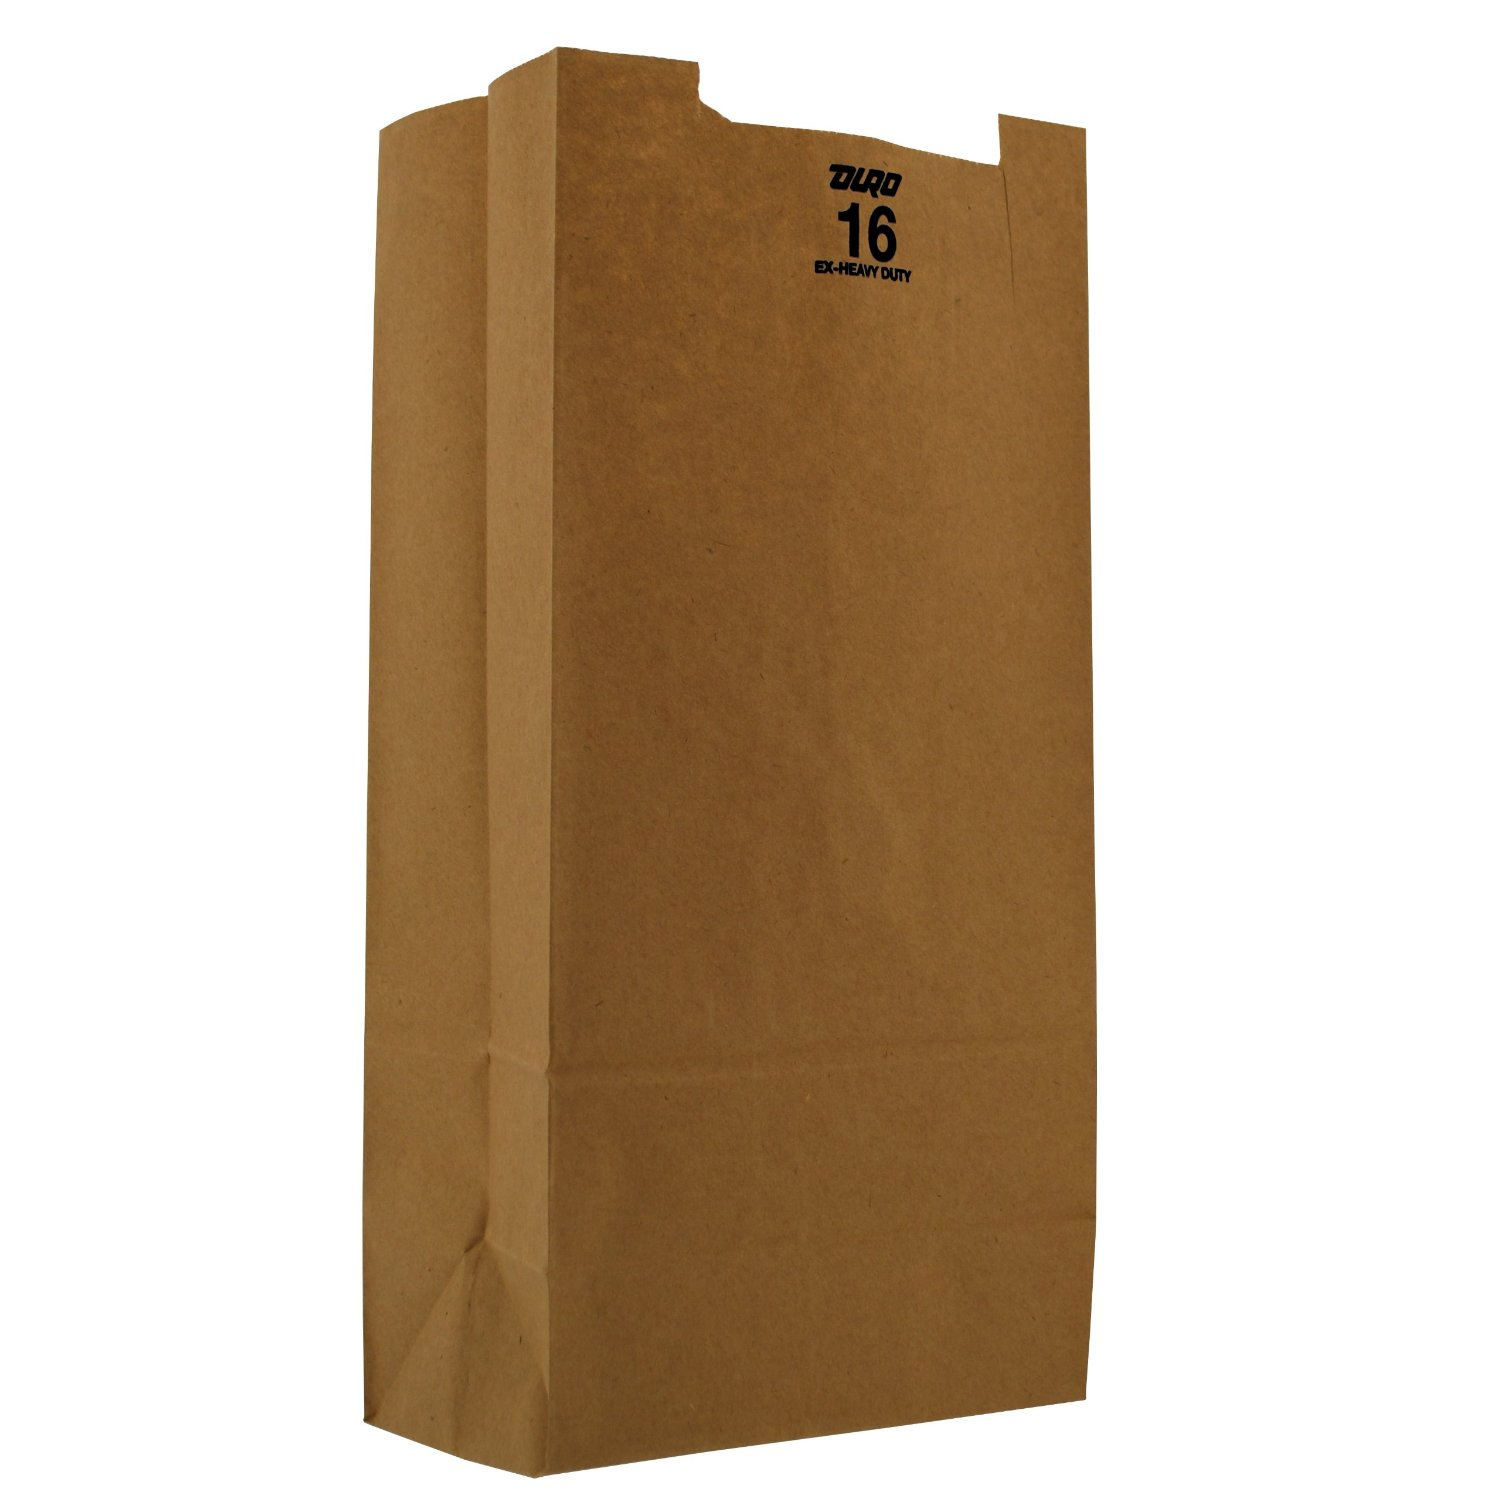 16# Natural Heavy Duty Paper Bags - 500(2/250)